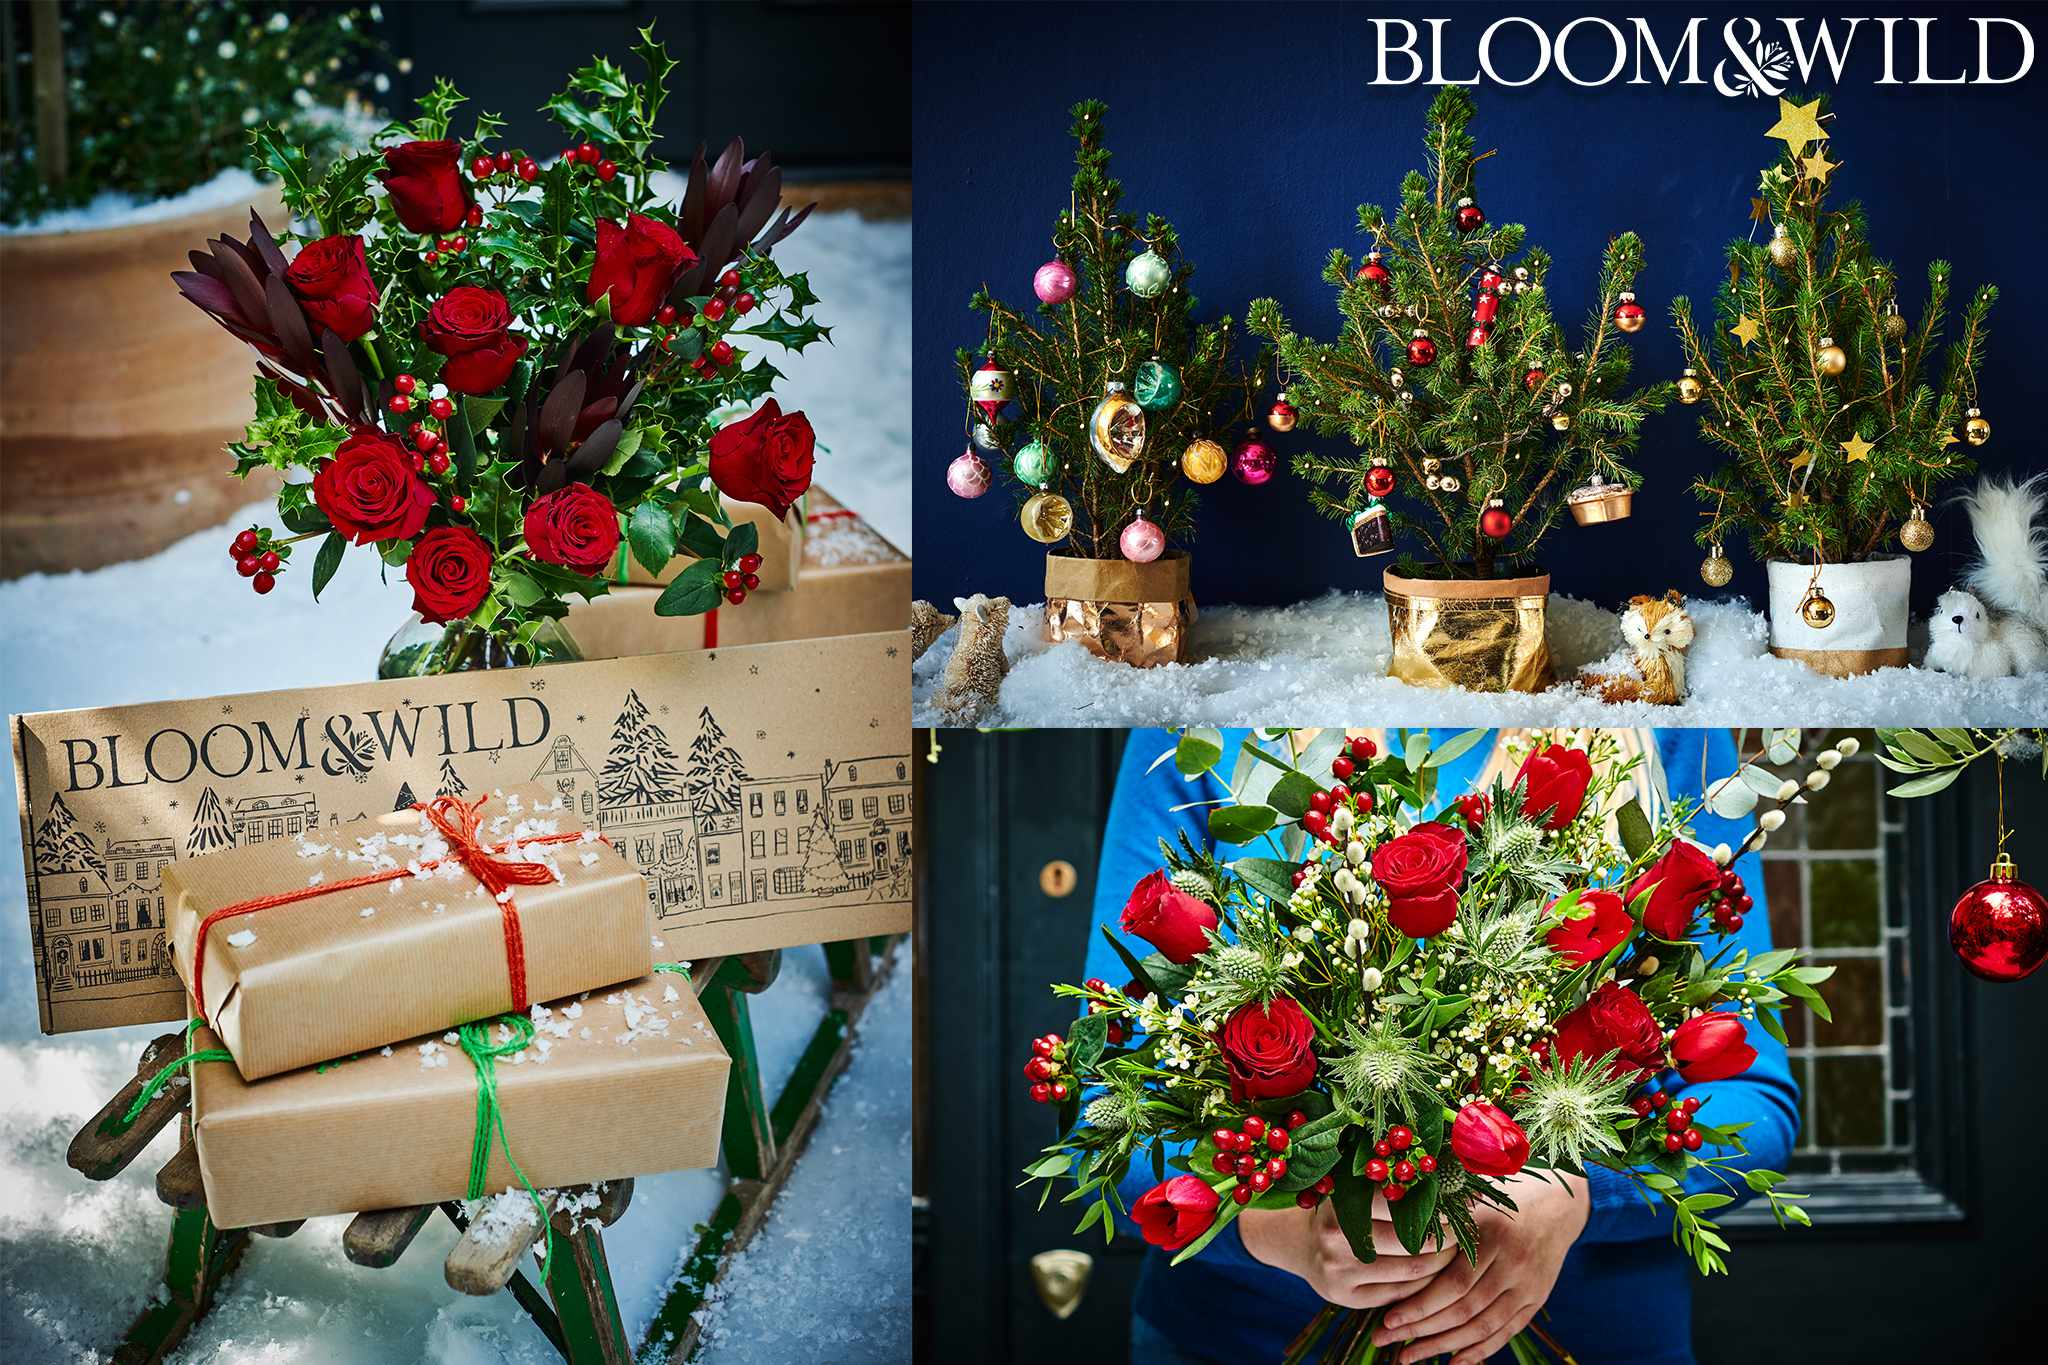 2018-nov-bloomandwild_1-2048-1365